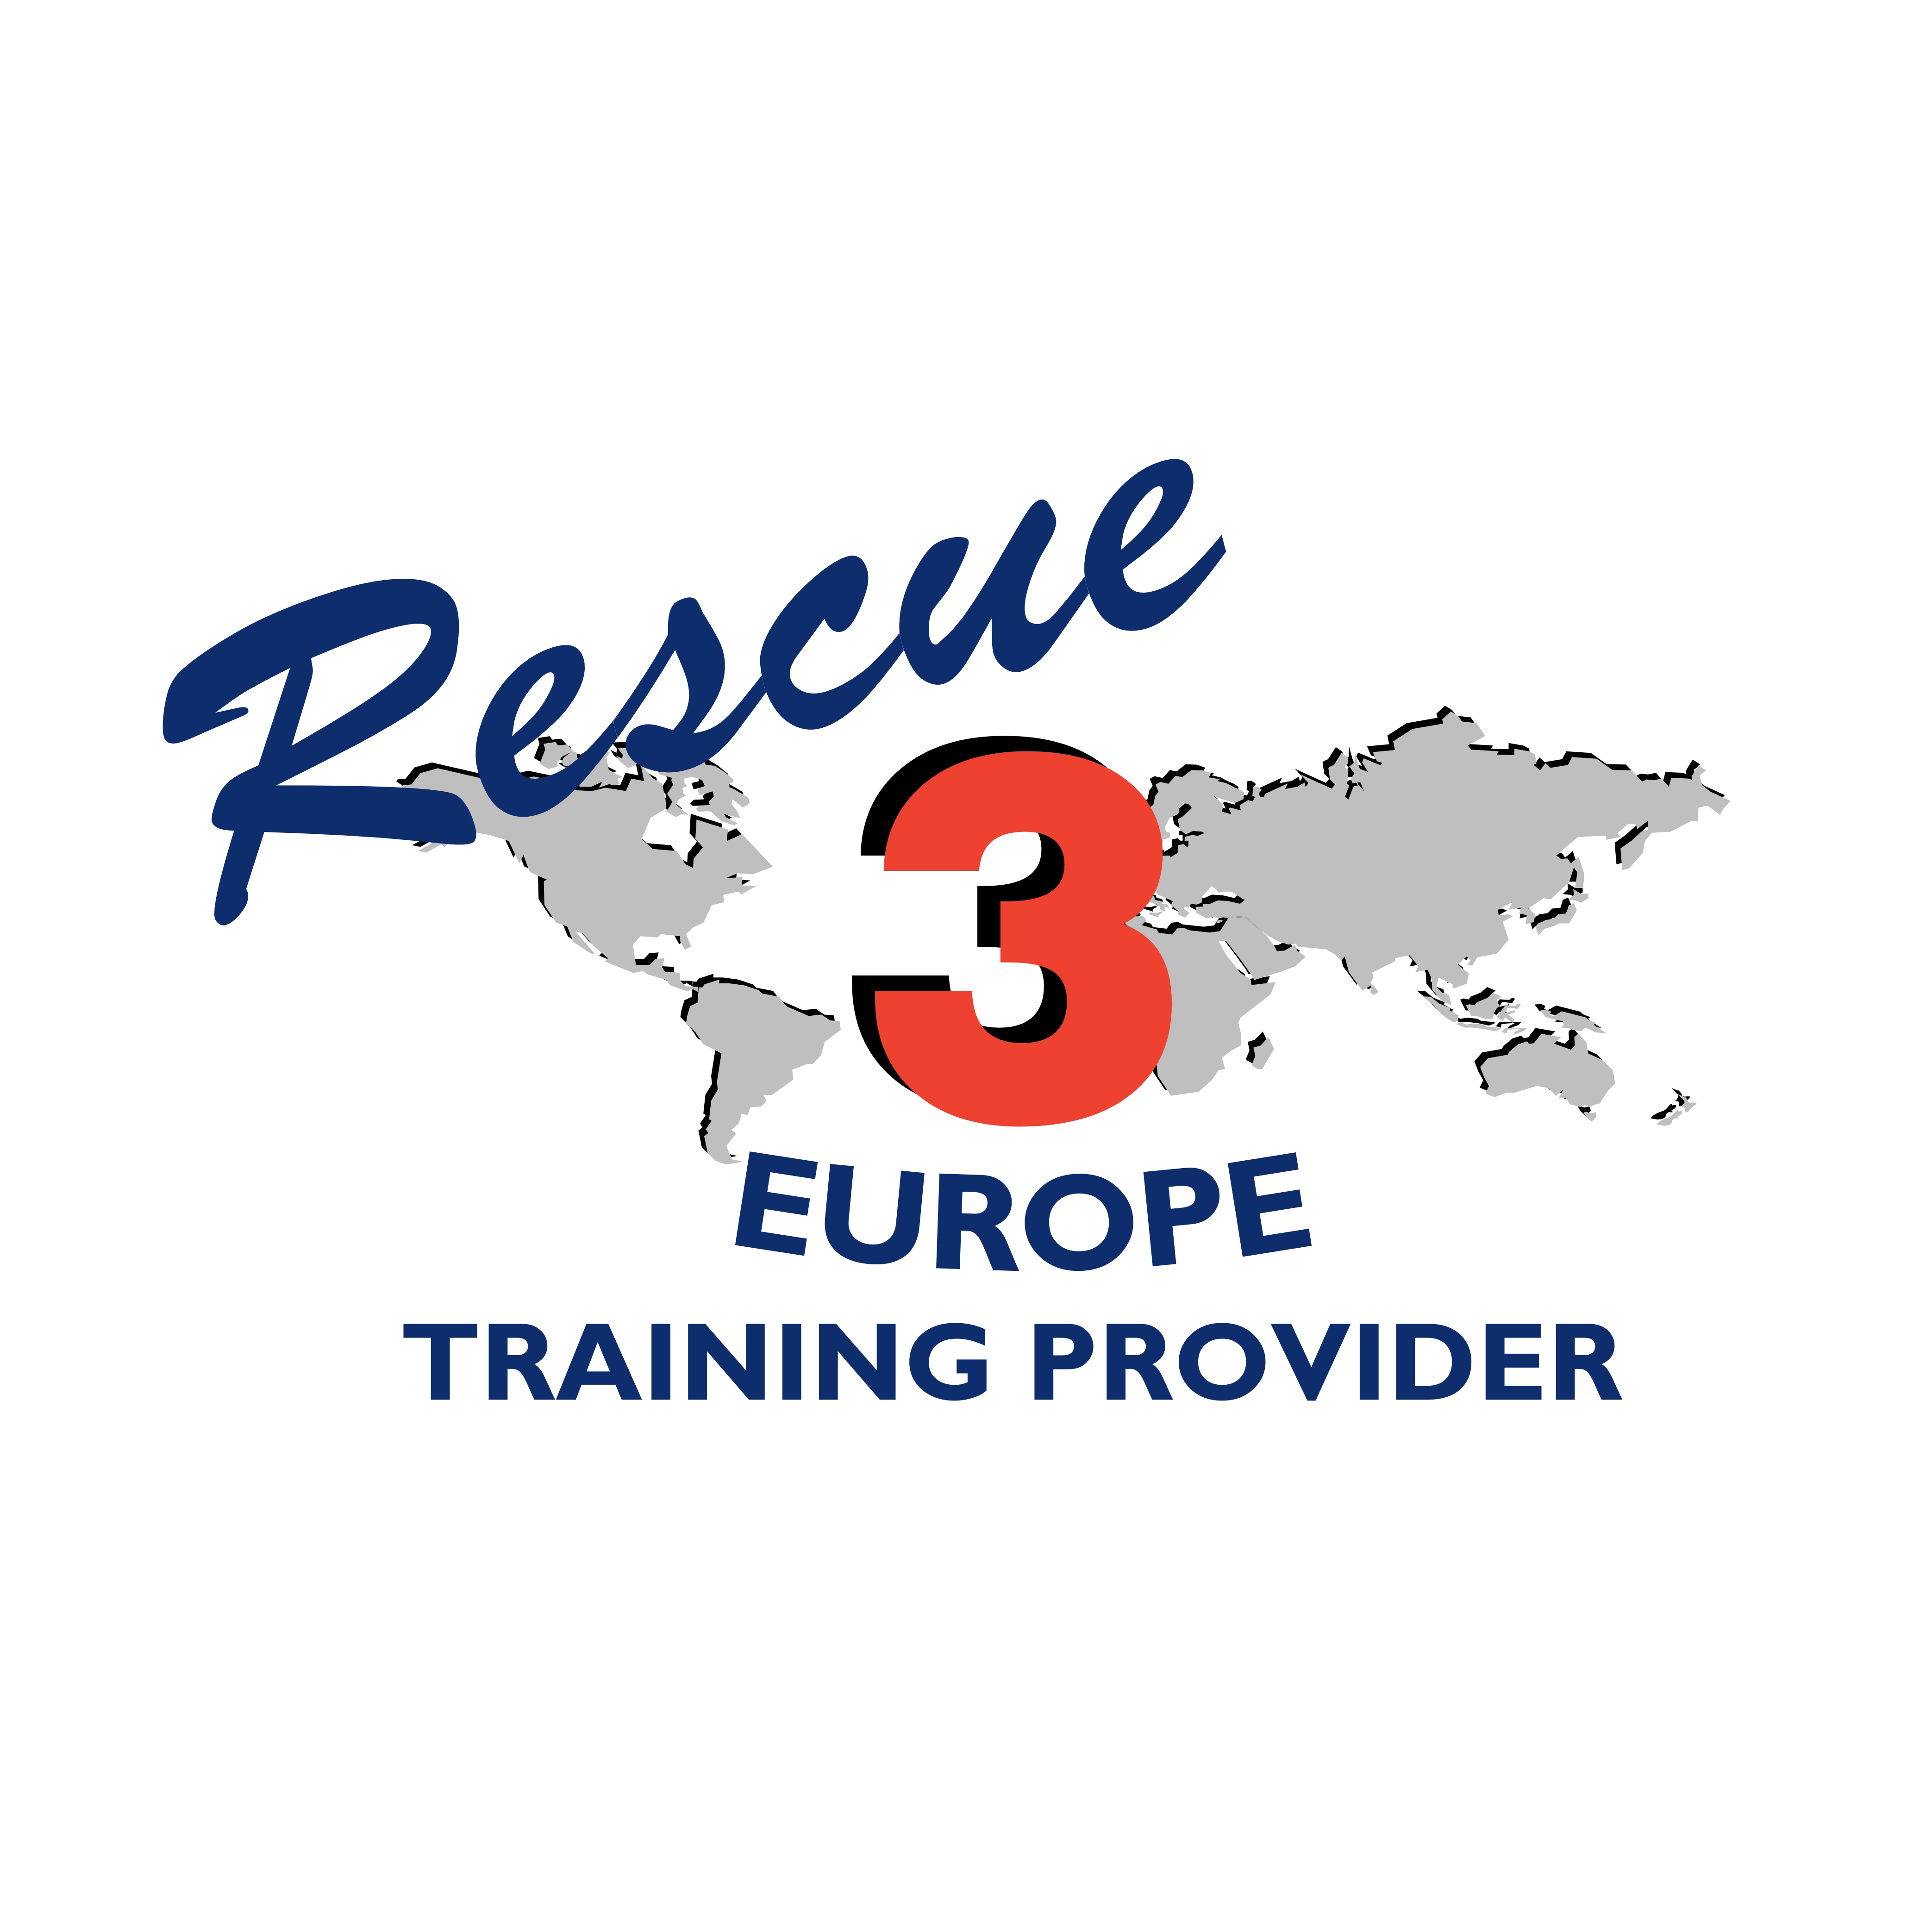 //www.kayakmetavasi.gr/wp-content/uploads/2019/06/Rescue-3-Europe-Training-Provider-Logo-white-squere.jpg